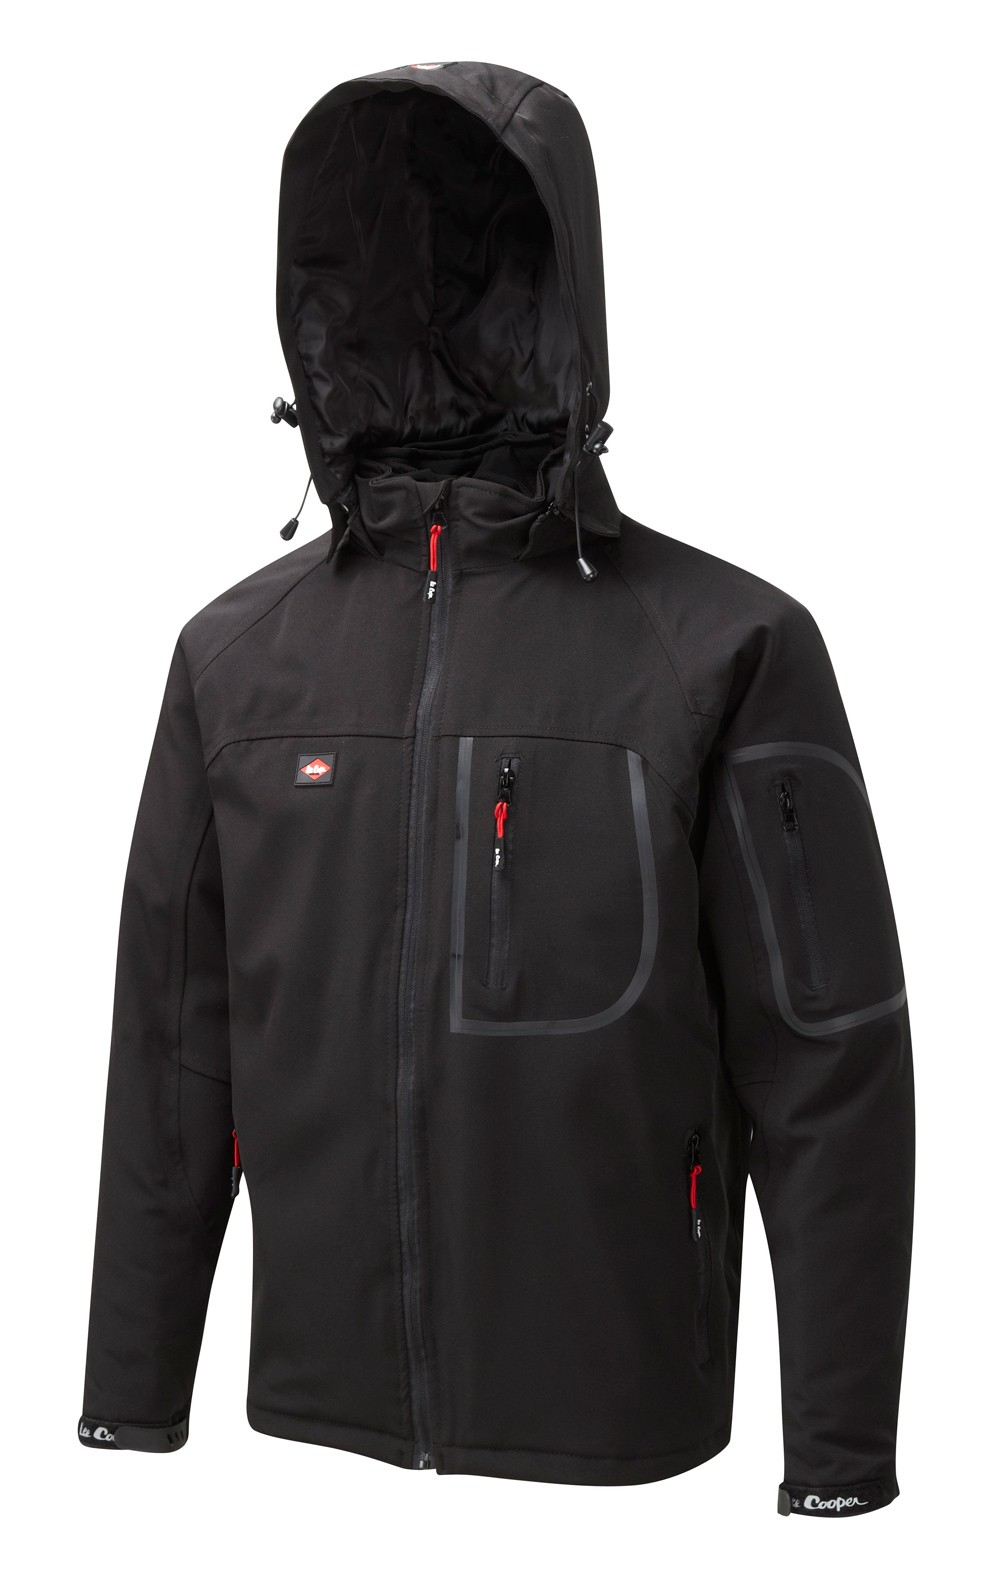 Softshell Lined Jacket with Knitted Panels